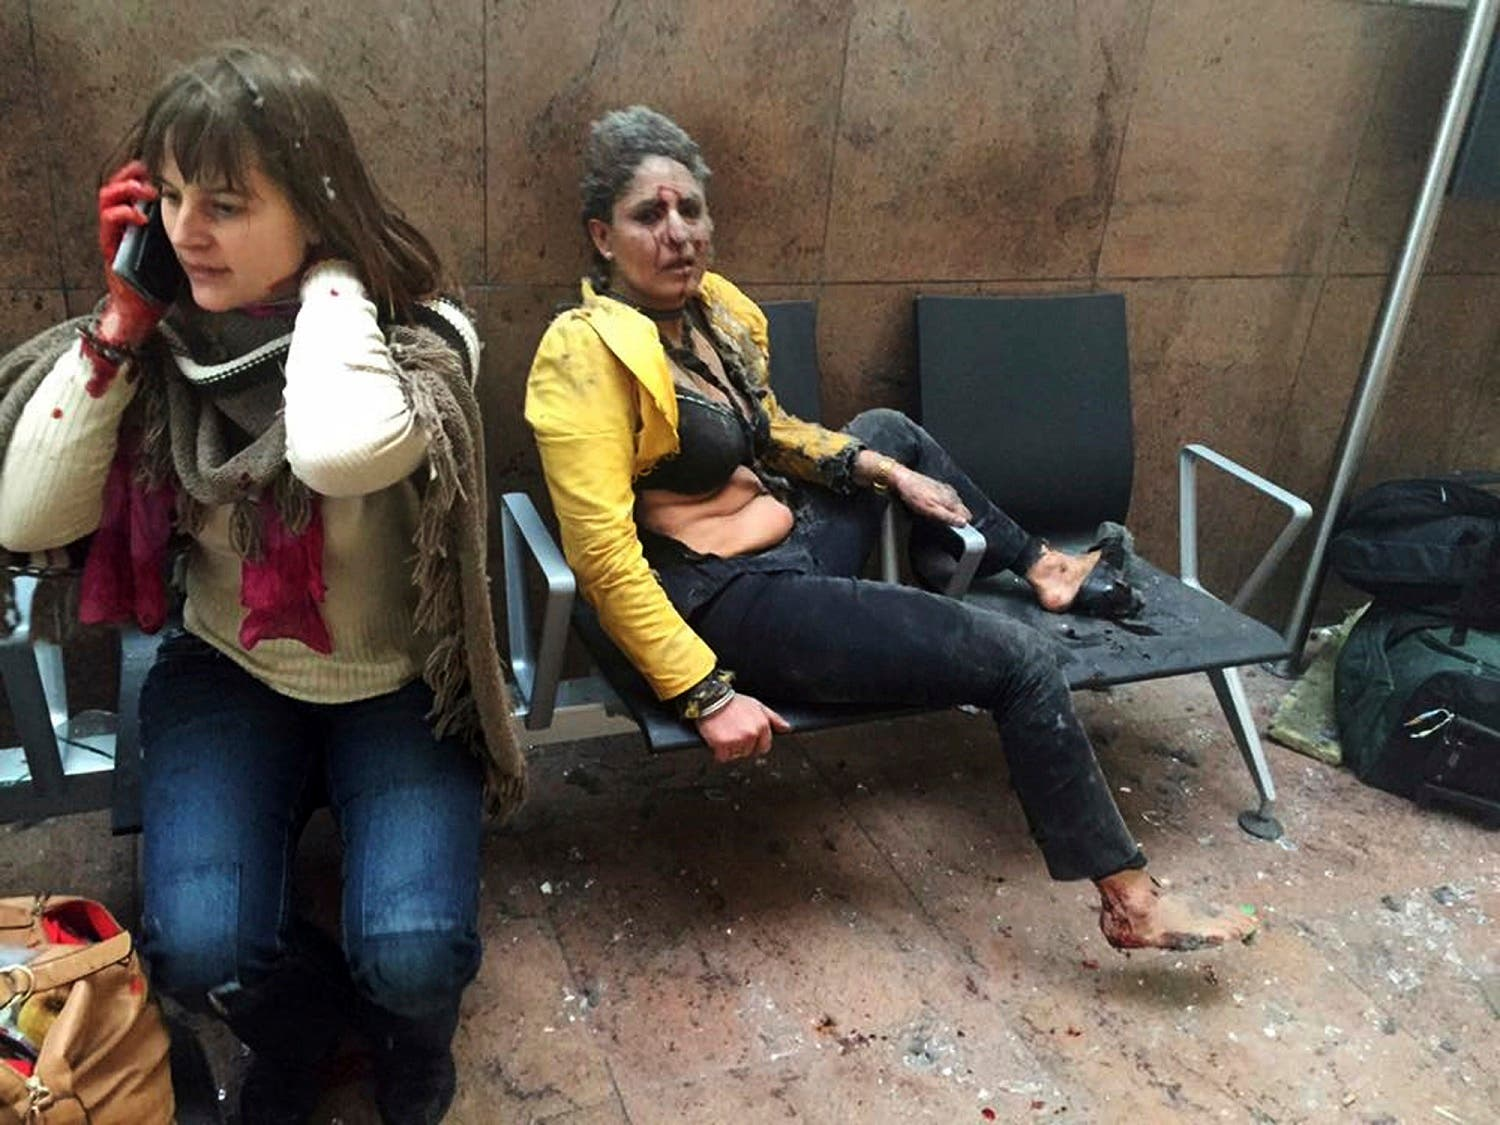 89: A 40-year-old Jet Airways flight attendant from Mumbai, right, and another unidentified woman are shown after being wounded in Brussels Airport in Brussels, Belgium, after explosions rocked the airport on March 22, 2016. (AP)